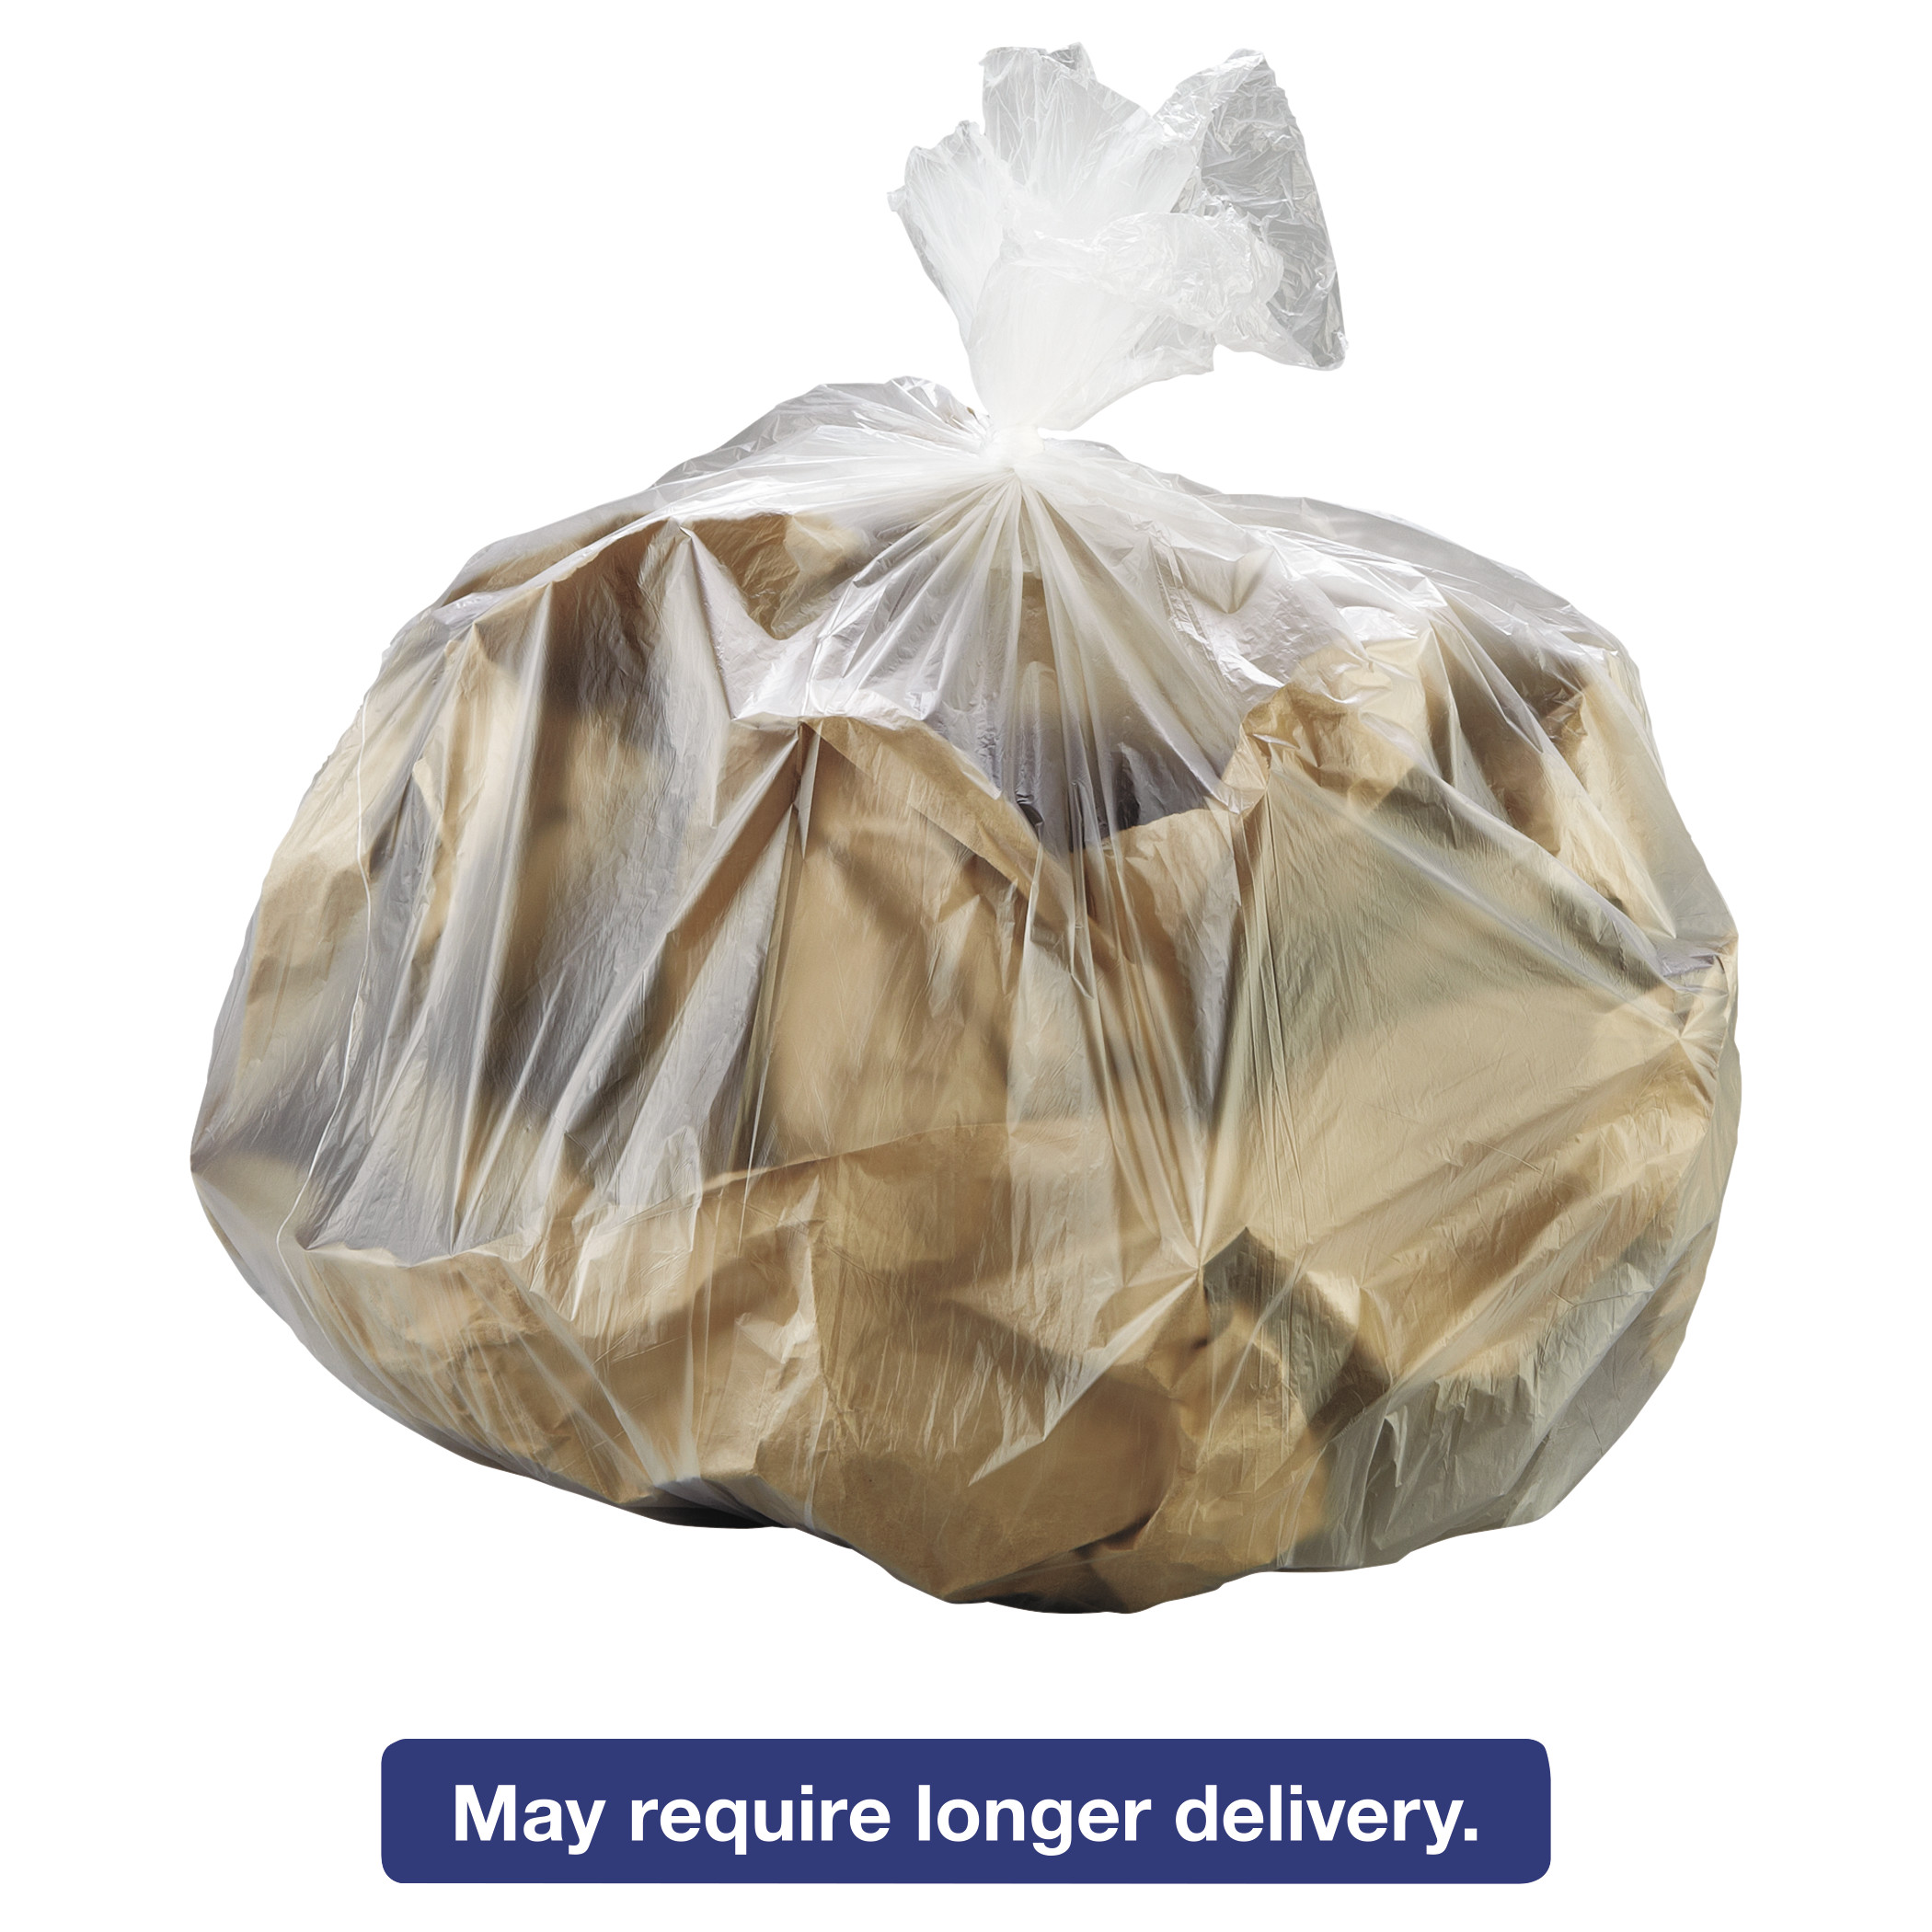 Inteplast Group High-Density Trash Bag, 30 x 37, 30-Gallon, 8 Micron, Clear, 25/Roll